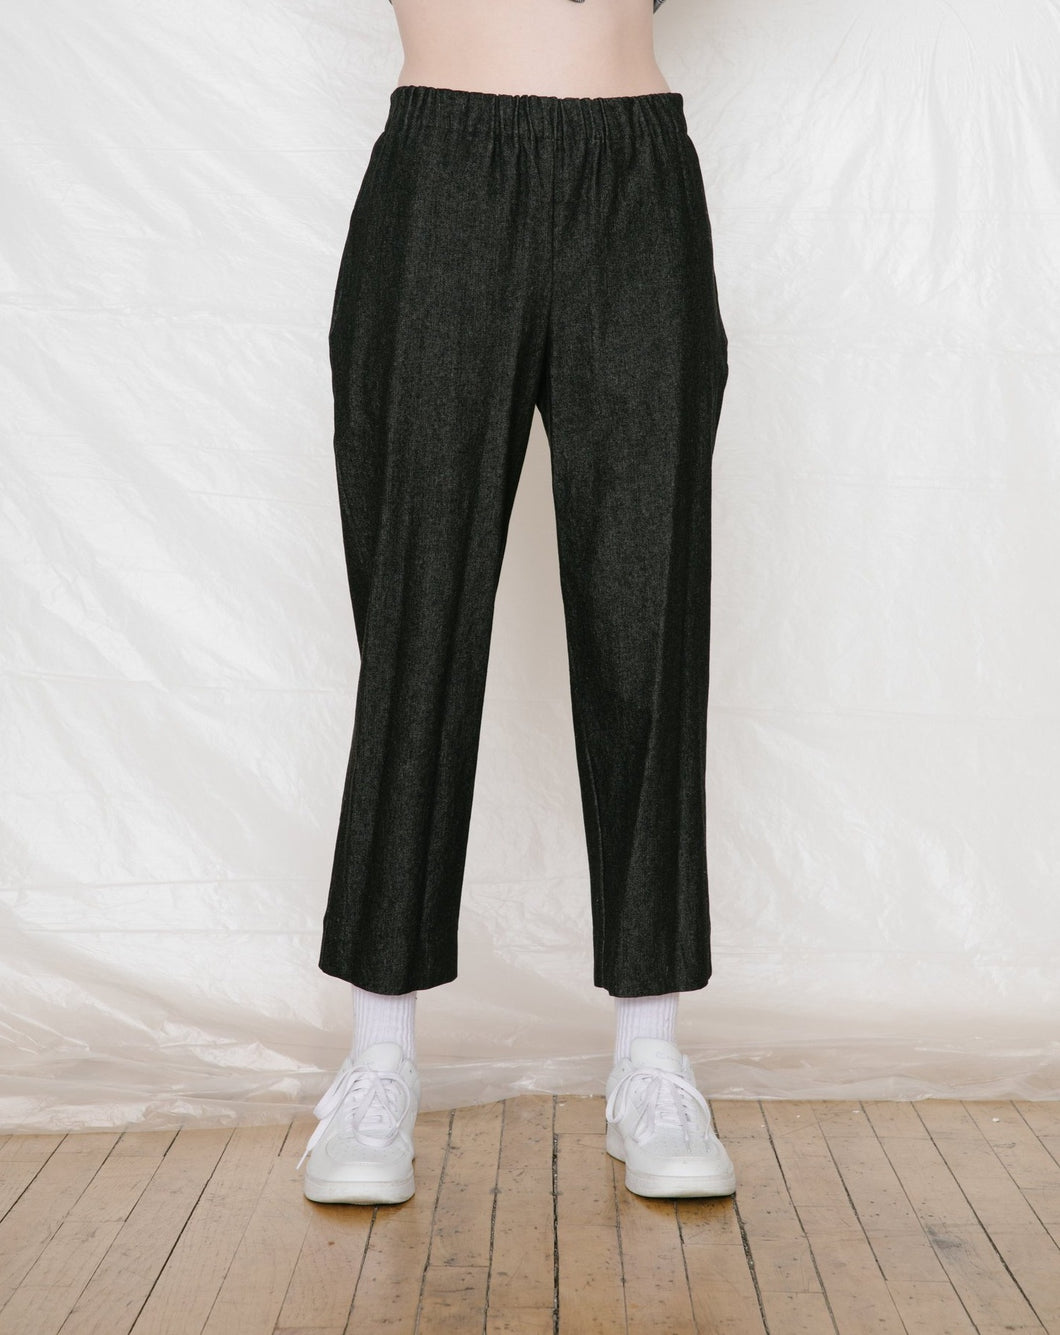 Slack Pants in Black Denim